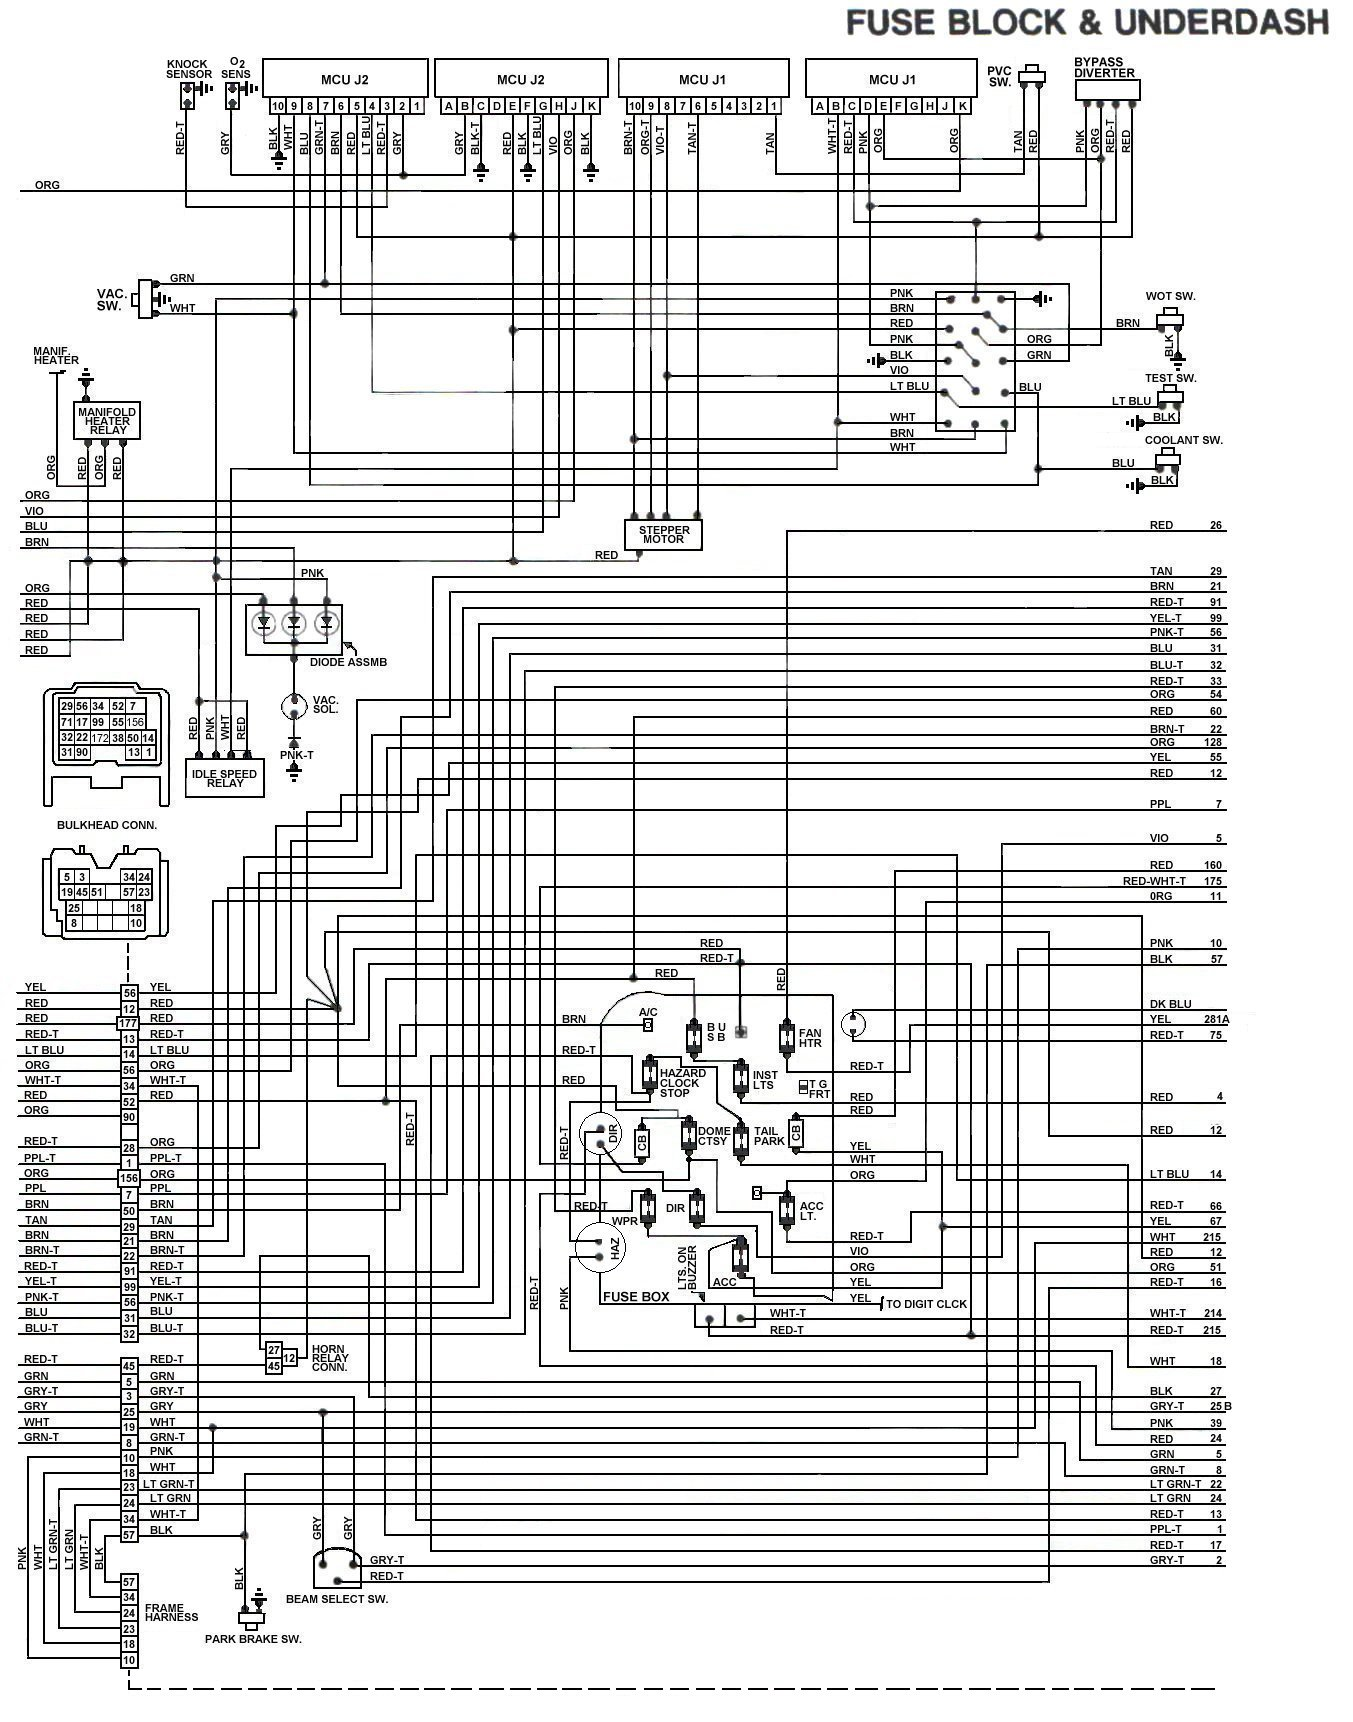 83_FSJ_WiringDiagram_FuseBlock Underdash tom 'oljeep' collins fsj wiring page  at honlapkeszites.co